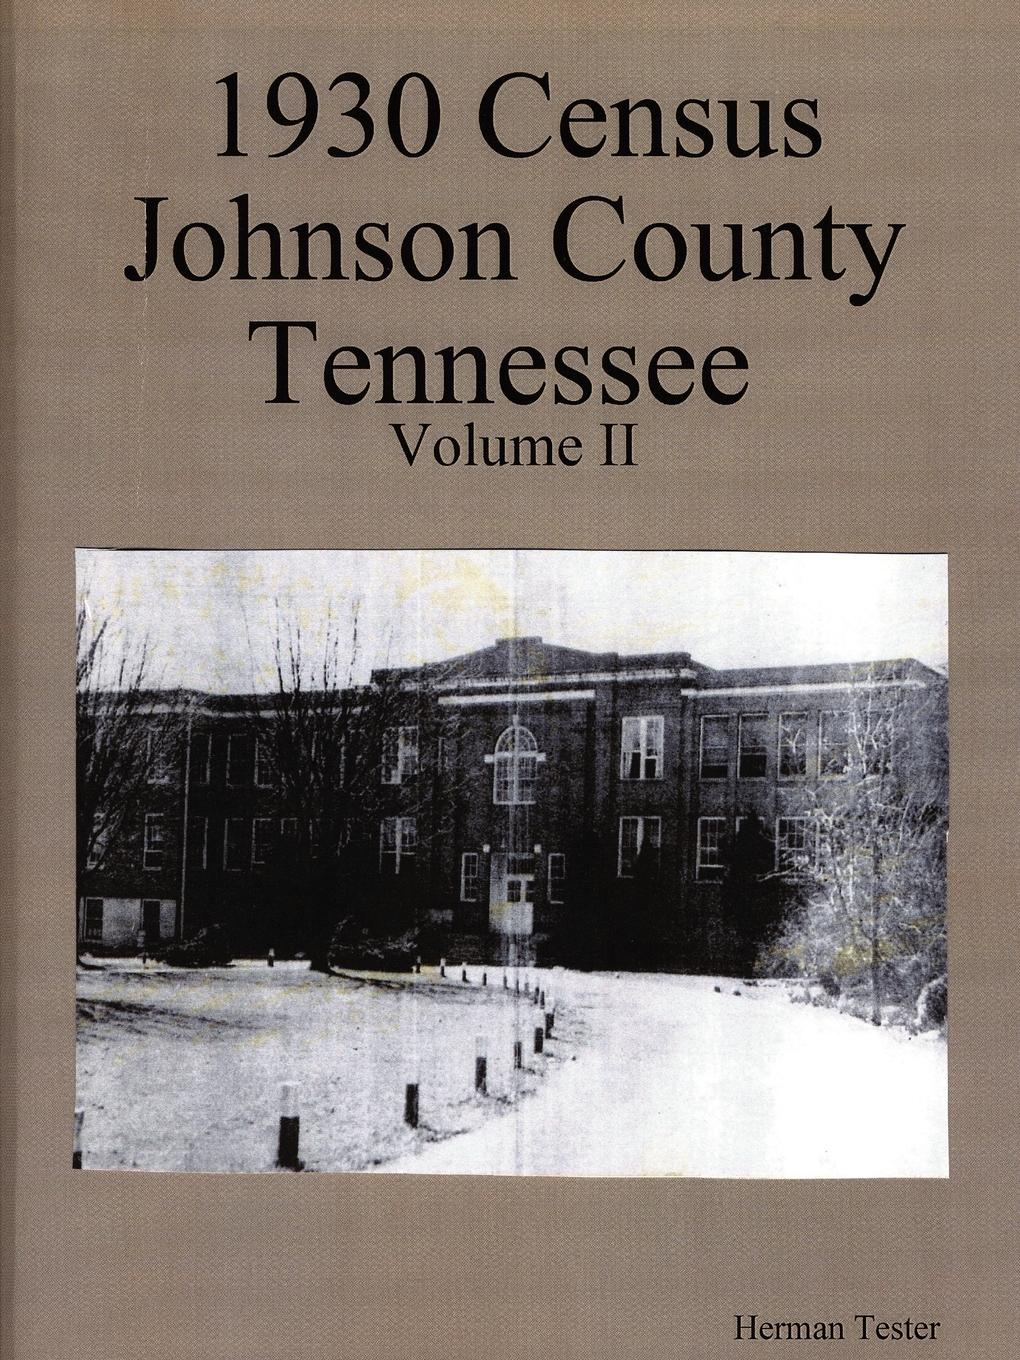 Herman Tester 1930 Census Johnson County Tennessee Volume II michael johnson spirits of ethasia the silent stag talamh